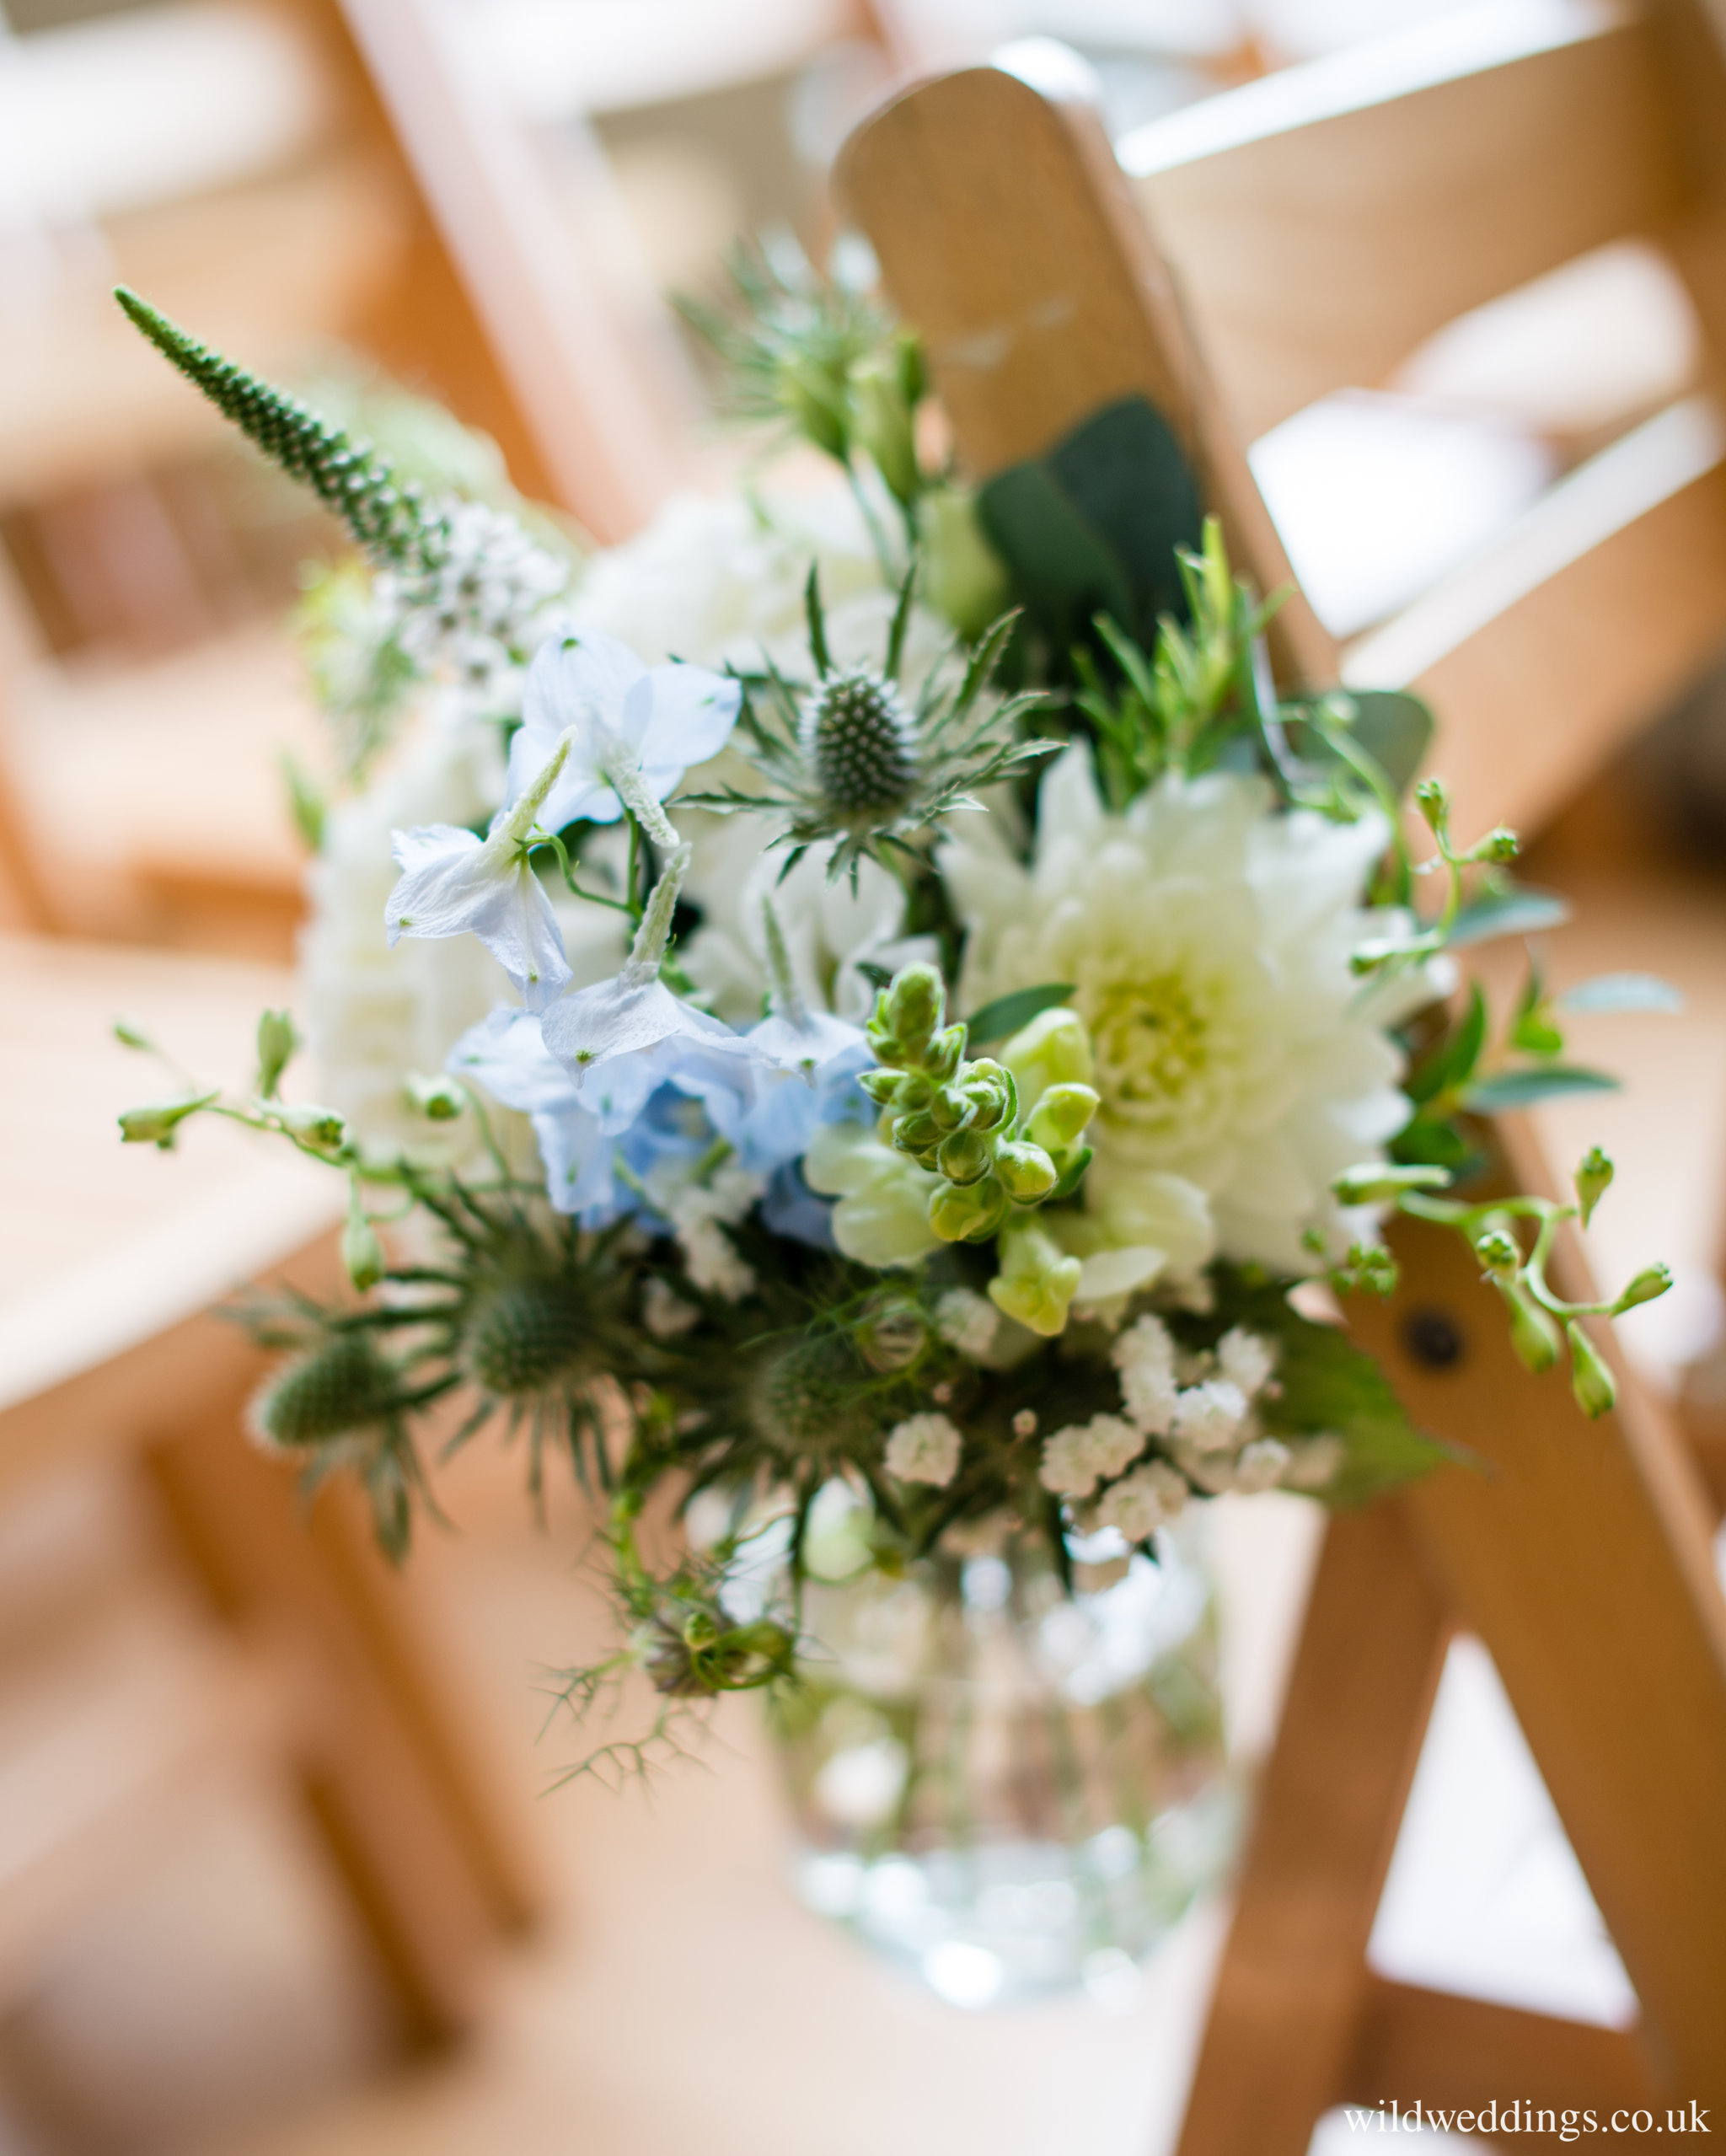 Wedding Flowers Berkshire: Ceremony Flowers - Joanna Carter Wedding Flowers